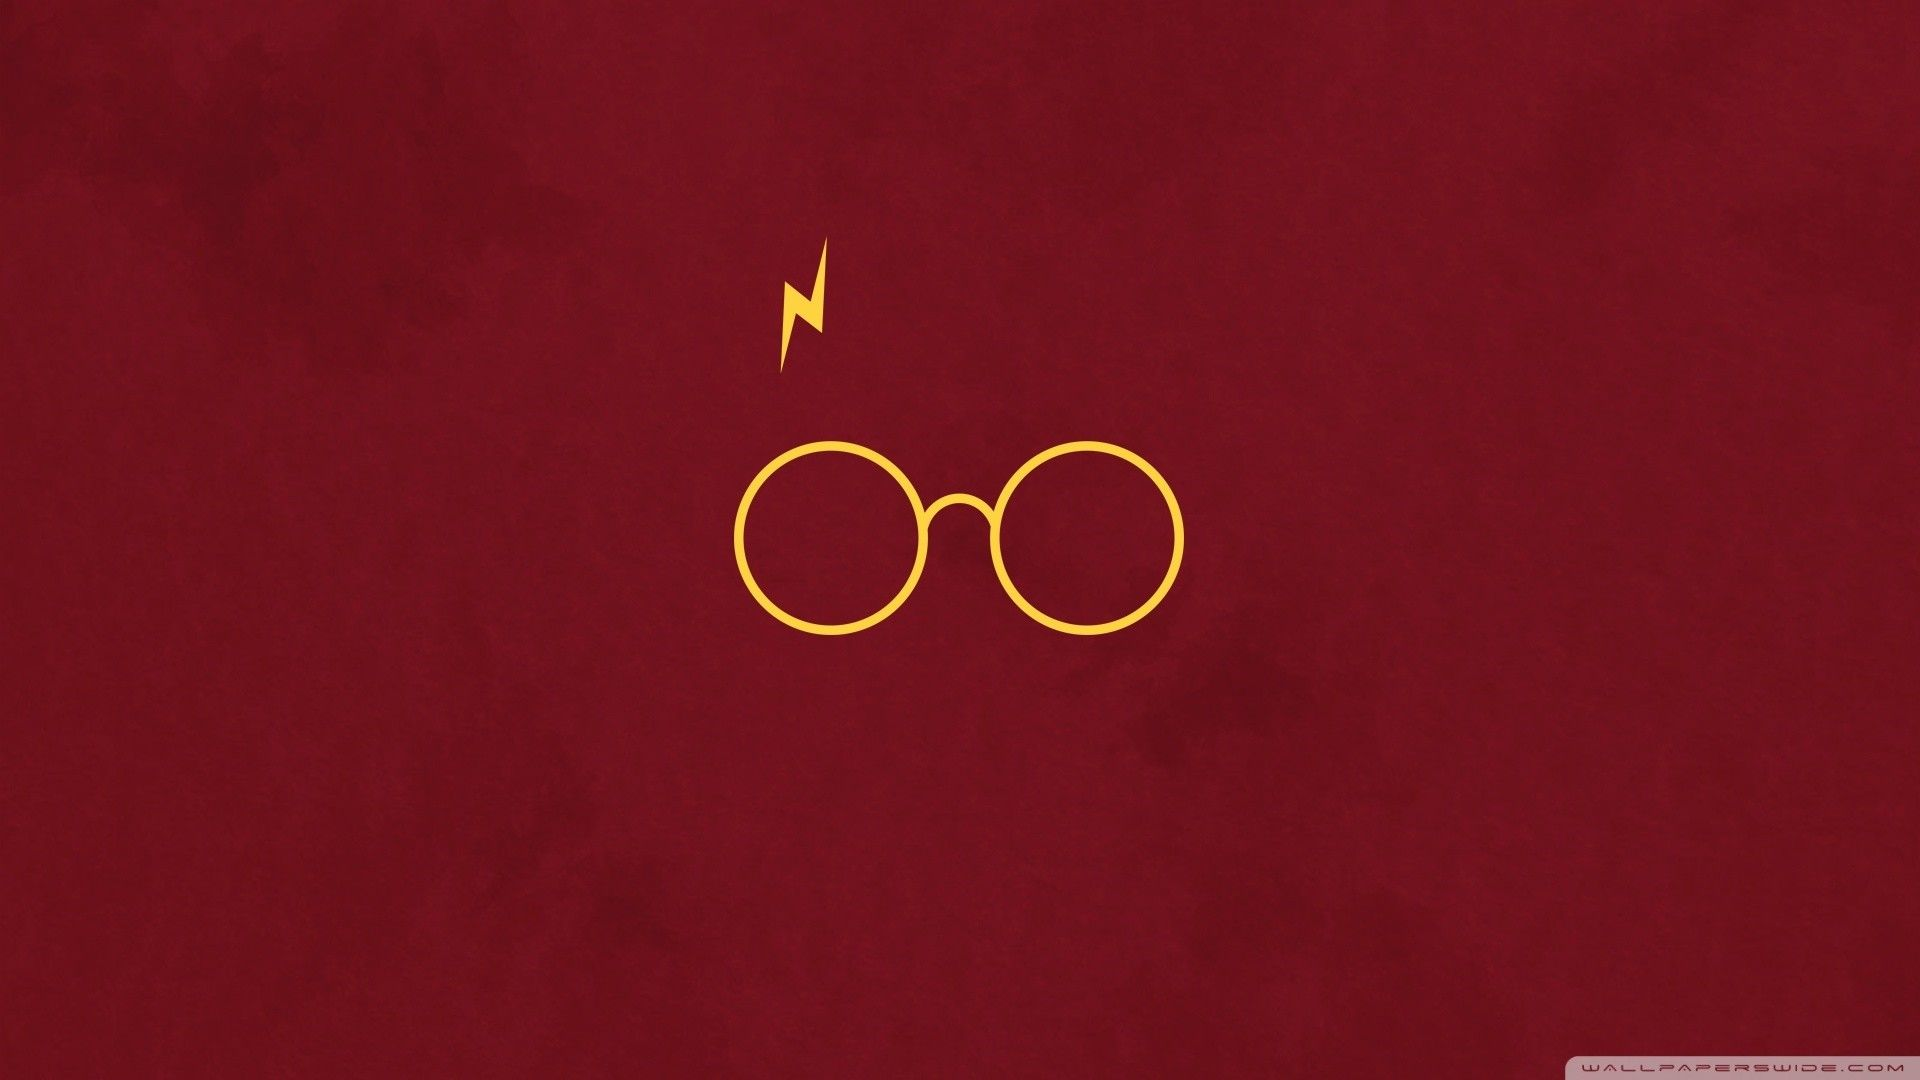 75 Harry Potter Wallpapers On Wallpaperplay Desktop Wallpaper Harry Potter Harry Potter Wallpaper Laptop Wallpaper Desktop Wallpapers